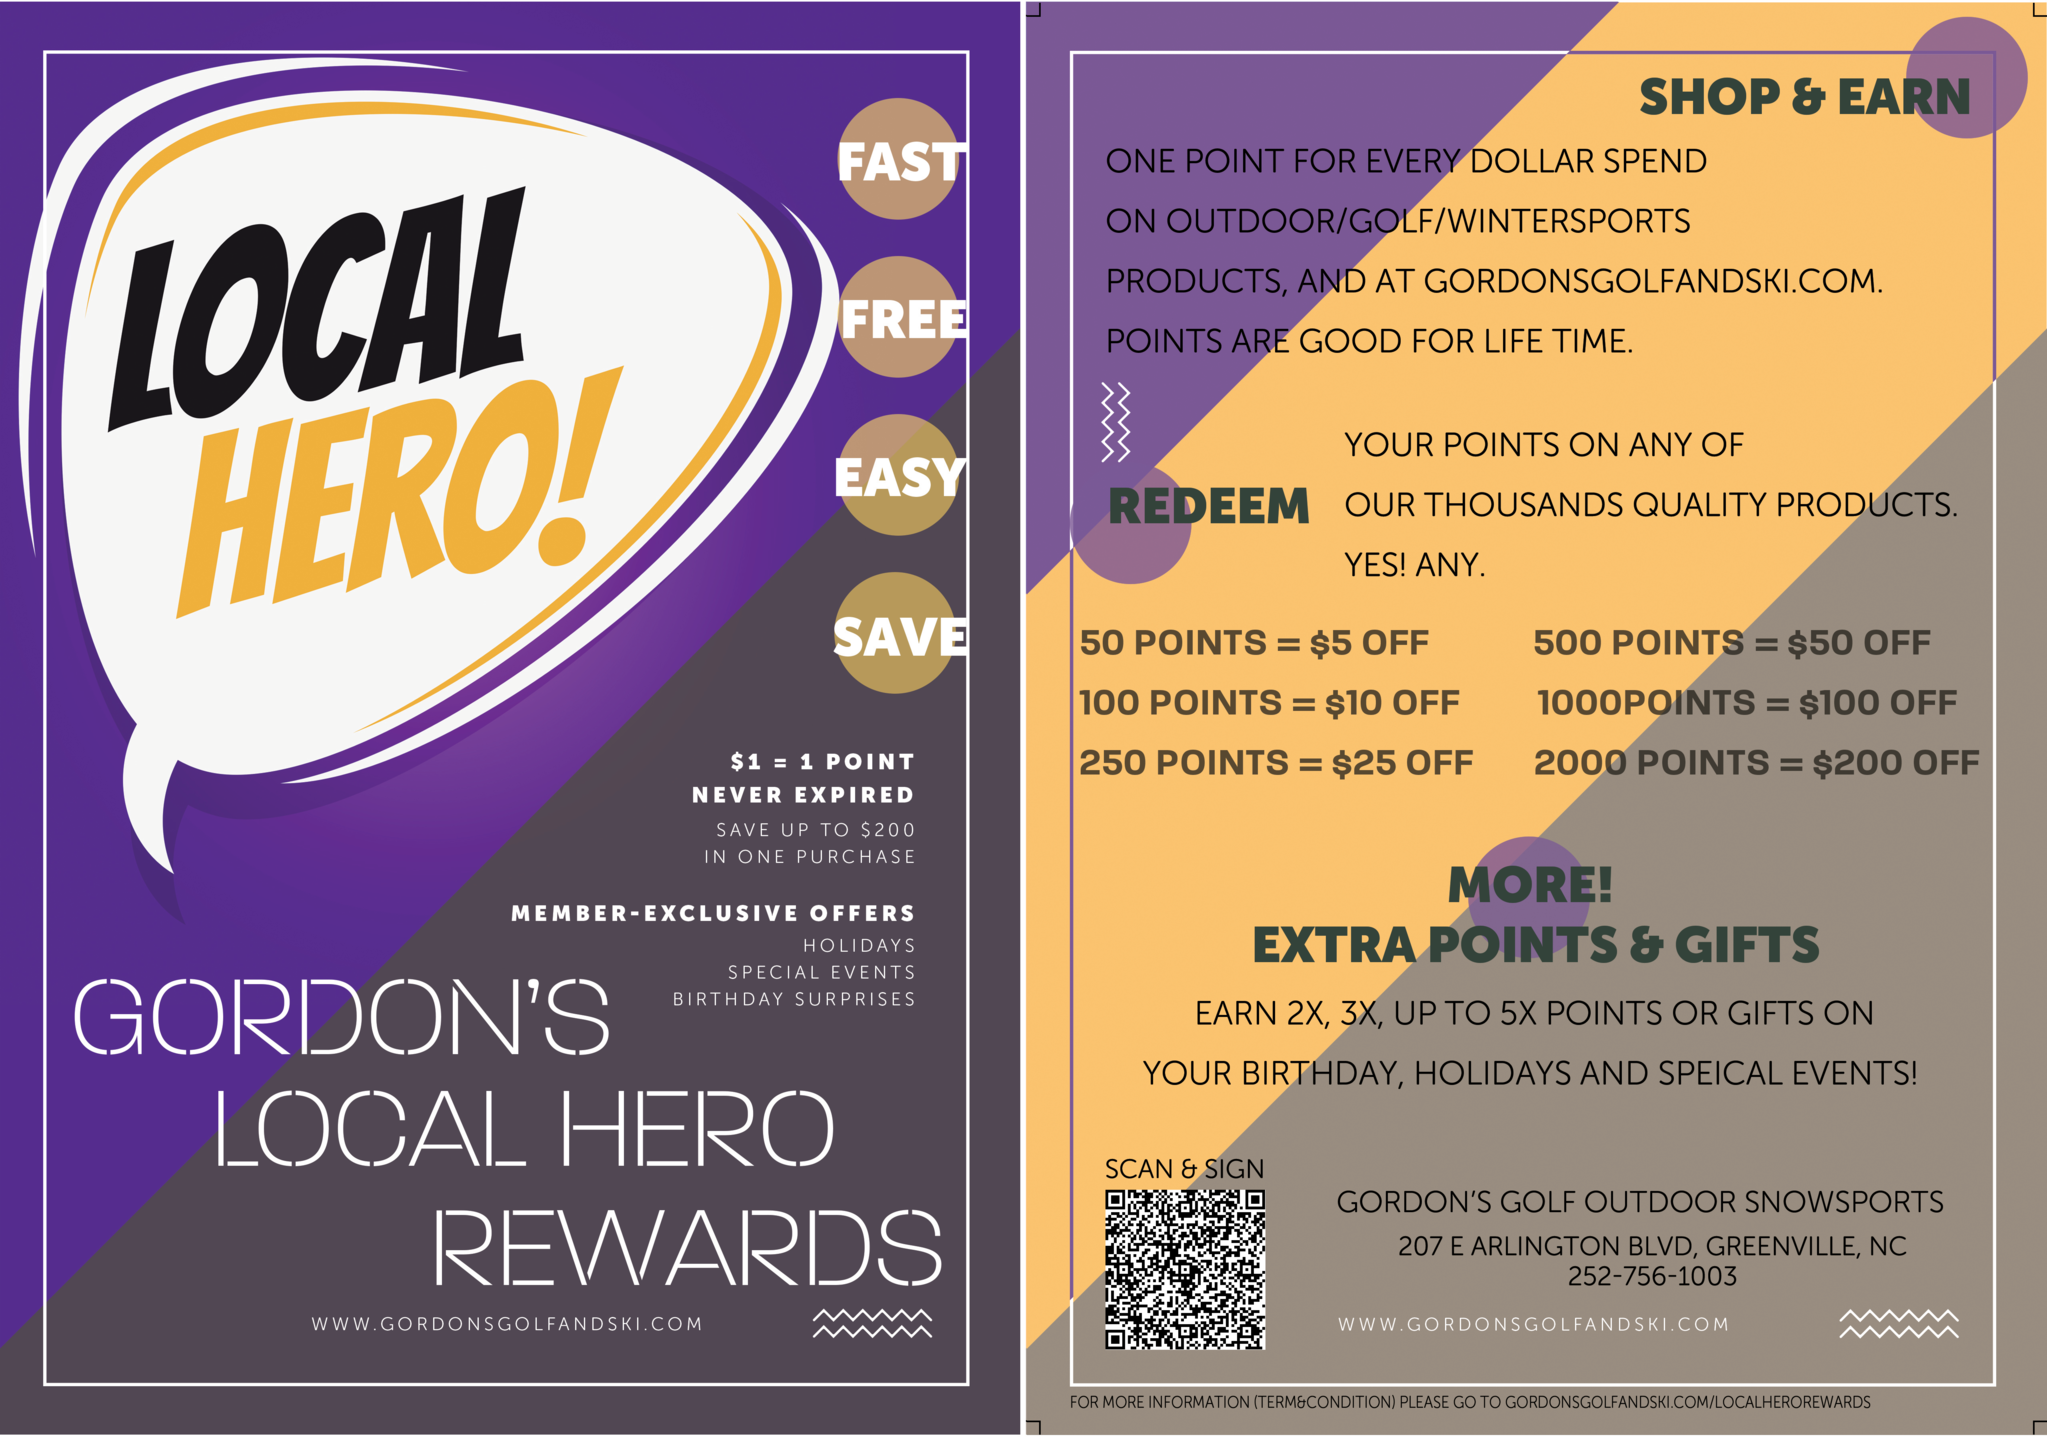 Gordons local hero rewards poster